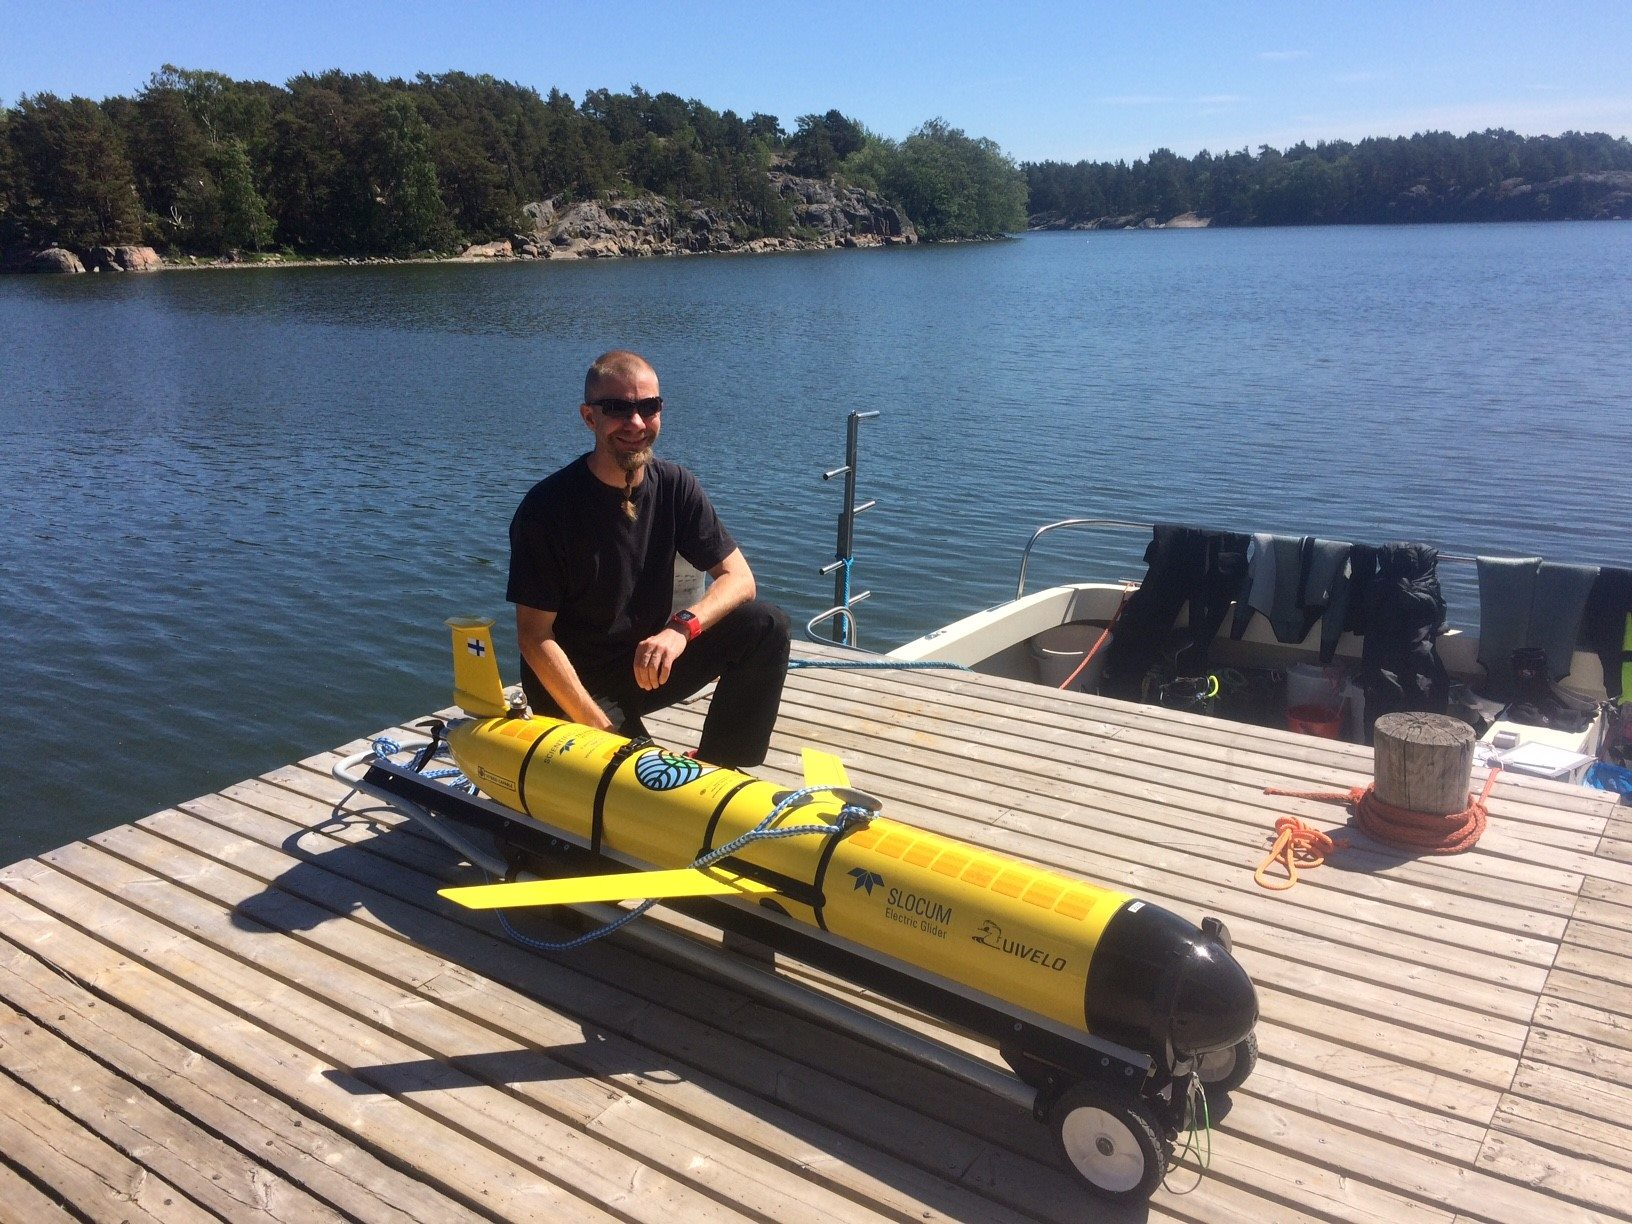 Finnish Meterological Institute and their under water glider.